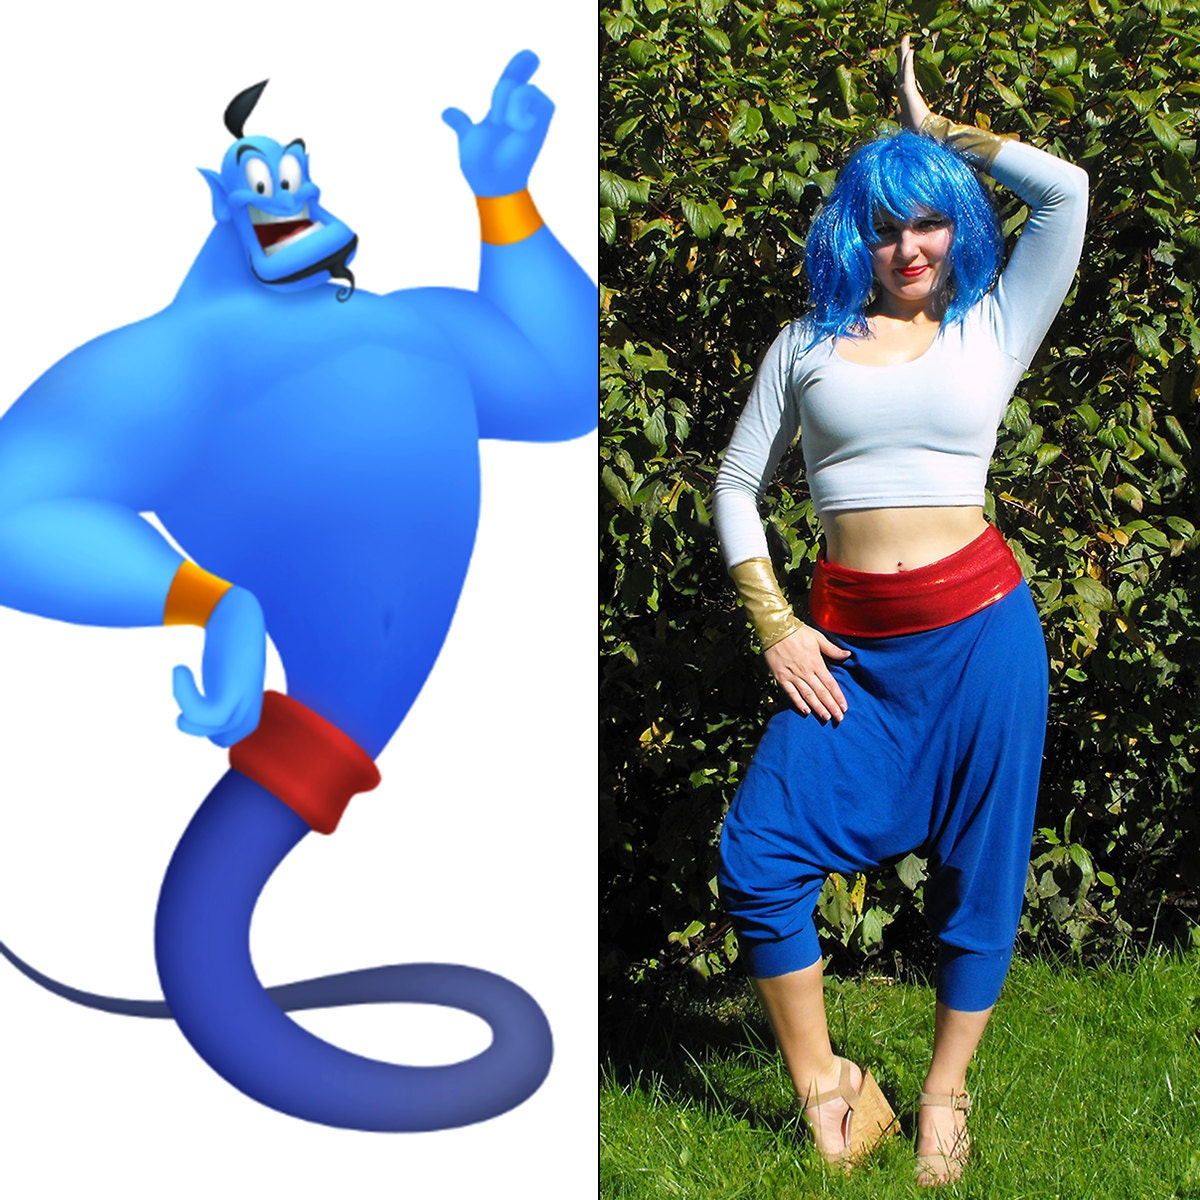 Aladdin Genie Costume // Genie Halloween Costume for Women